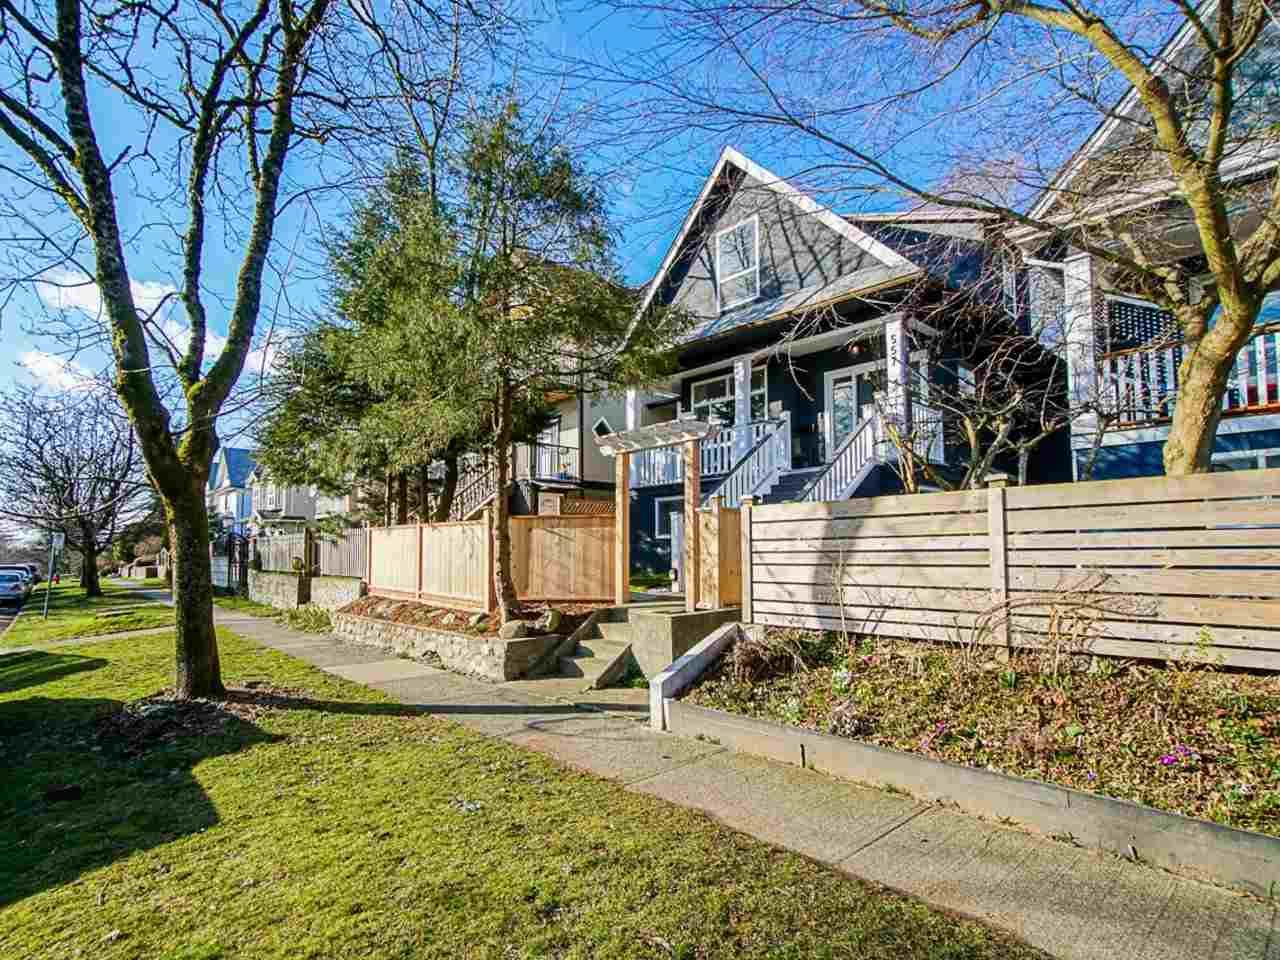 Main Photo: 557 E 48TH AVENUE in Vancouver: South Vancouver House for sale (Vancouver East)  : MLS®# R2544745